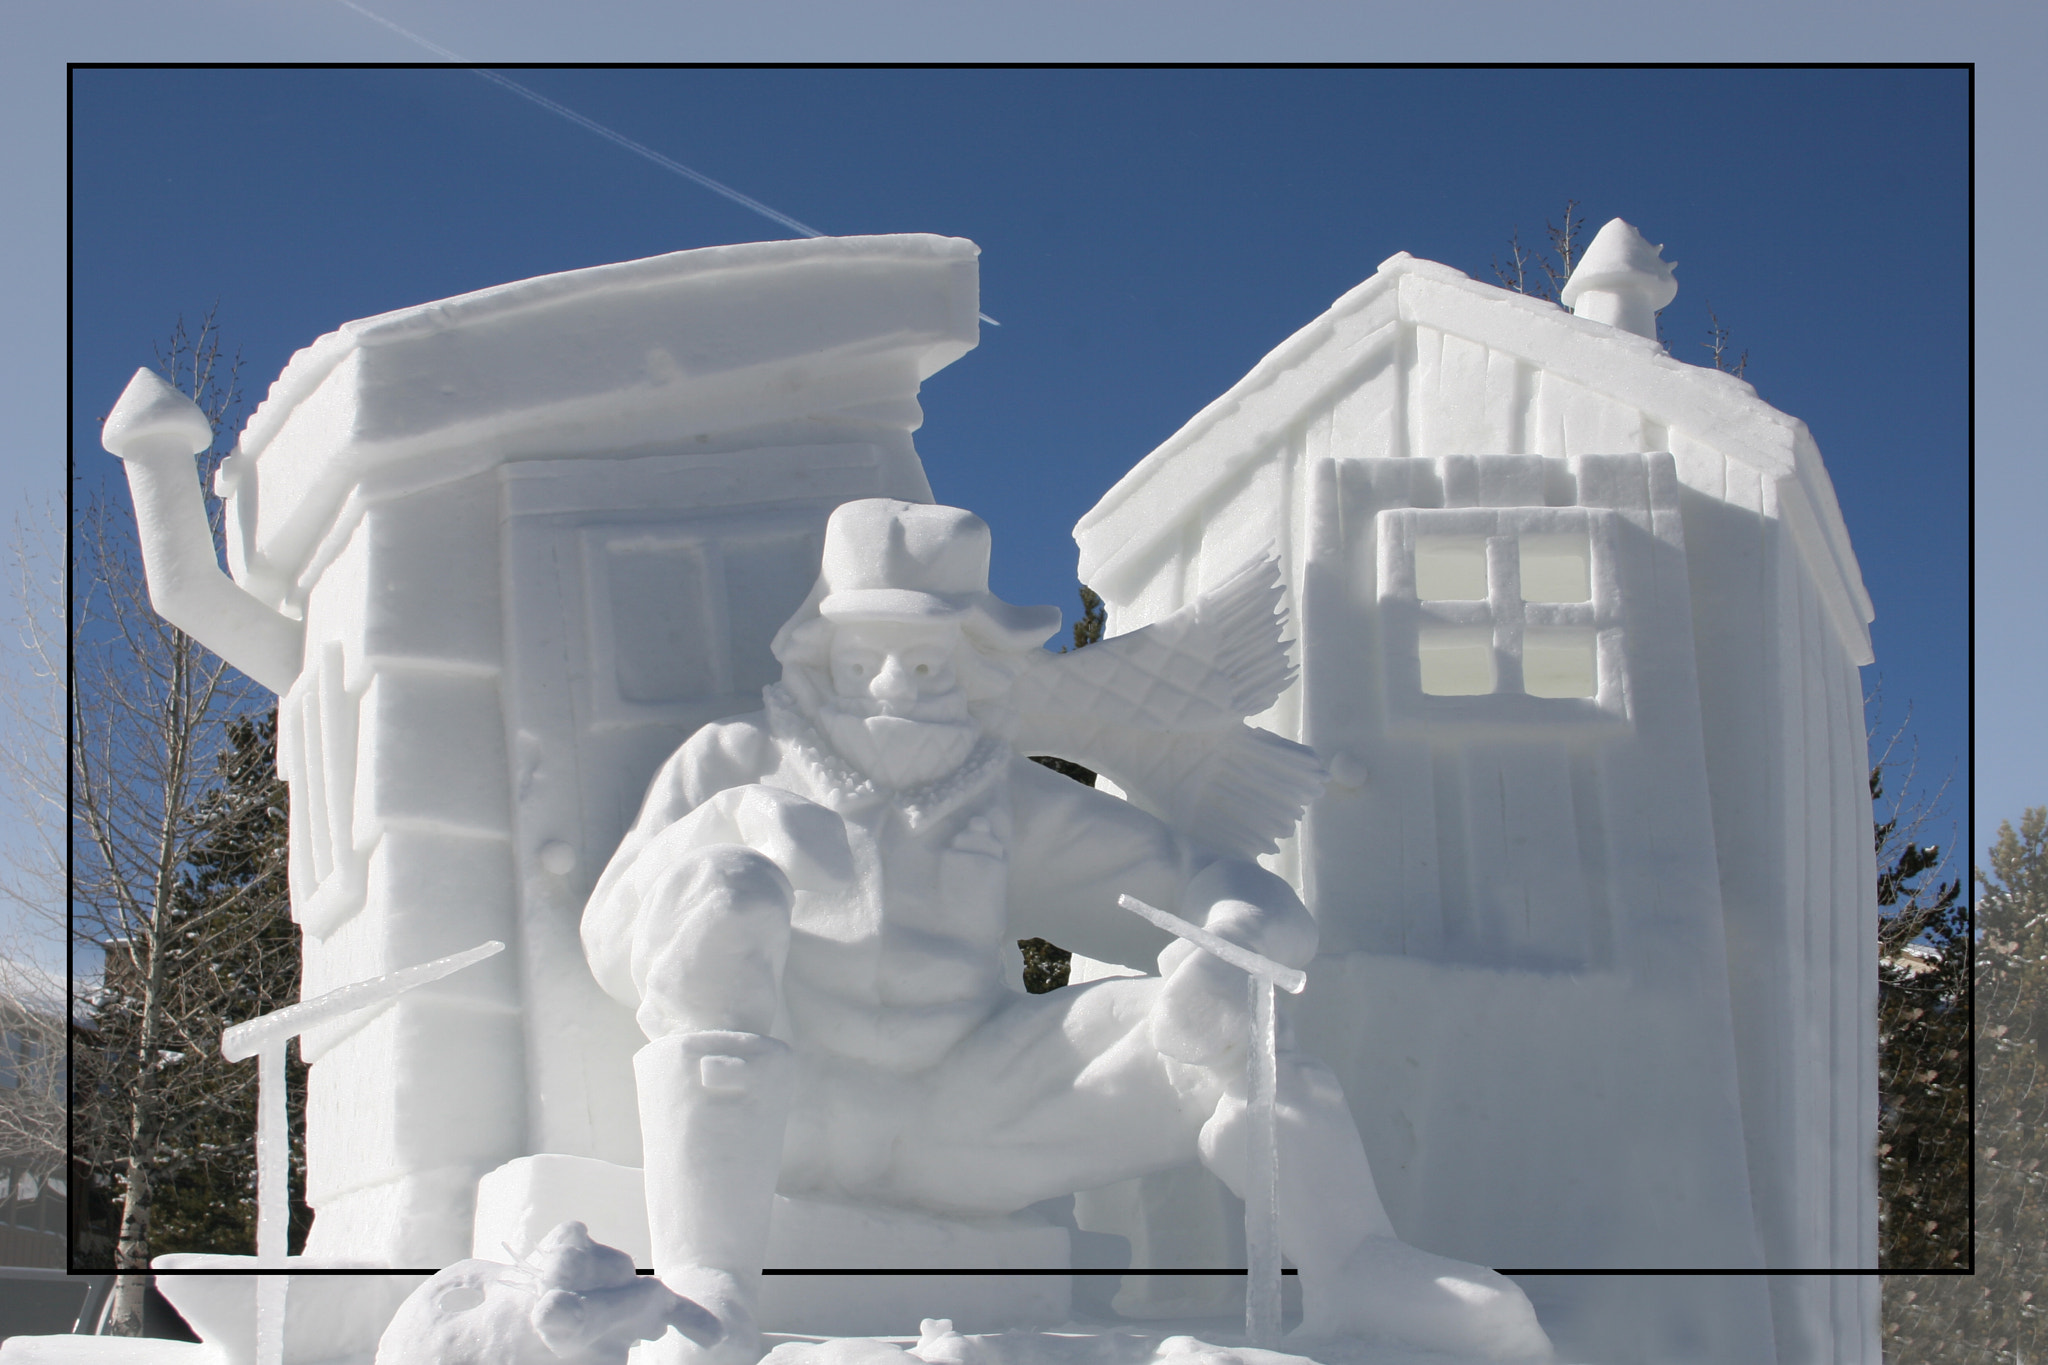 Photograph Snow Sculpture by Trung Tran on 500px